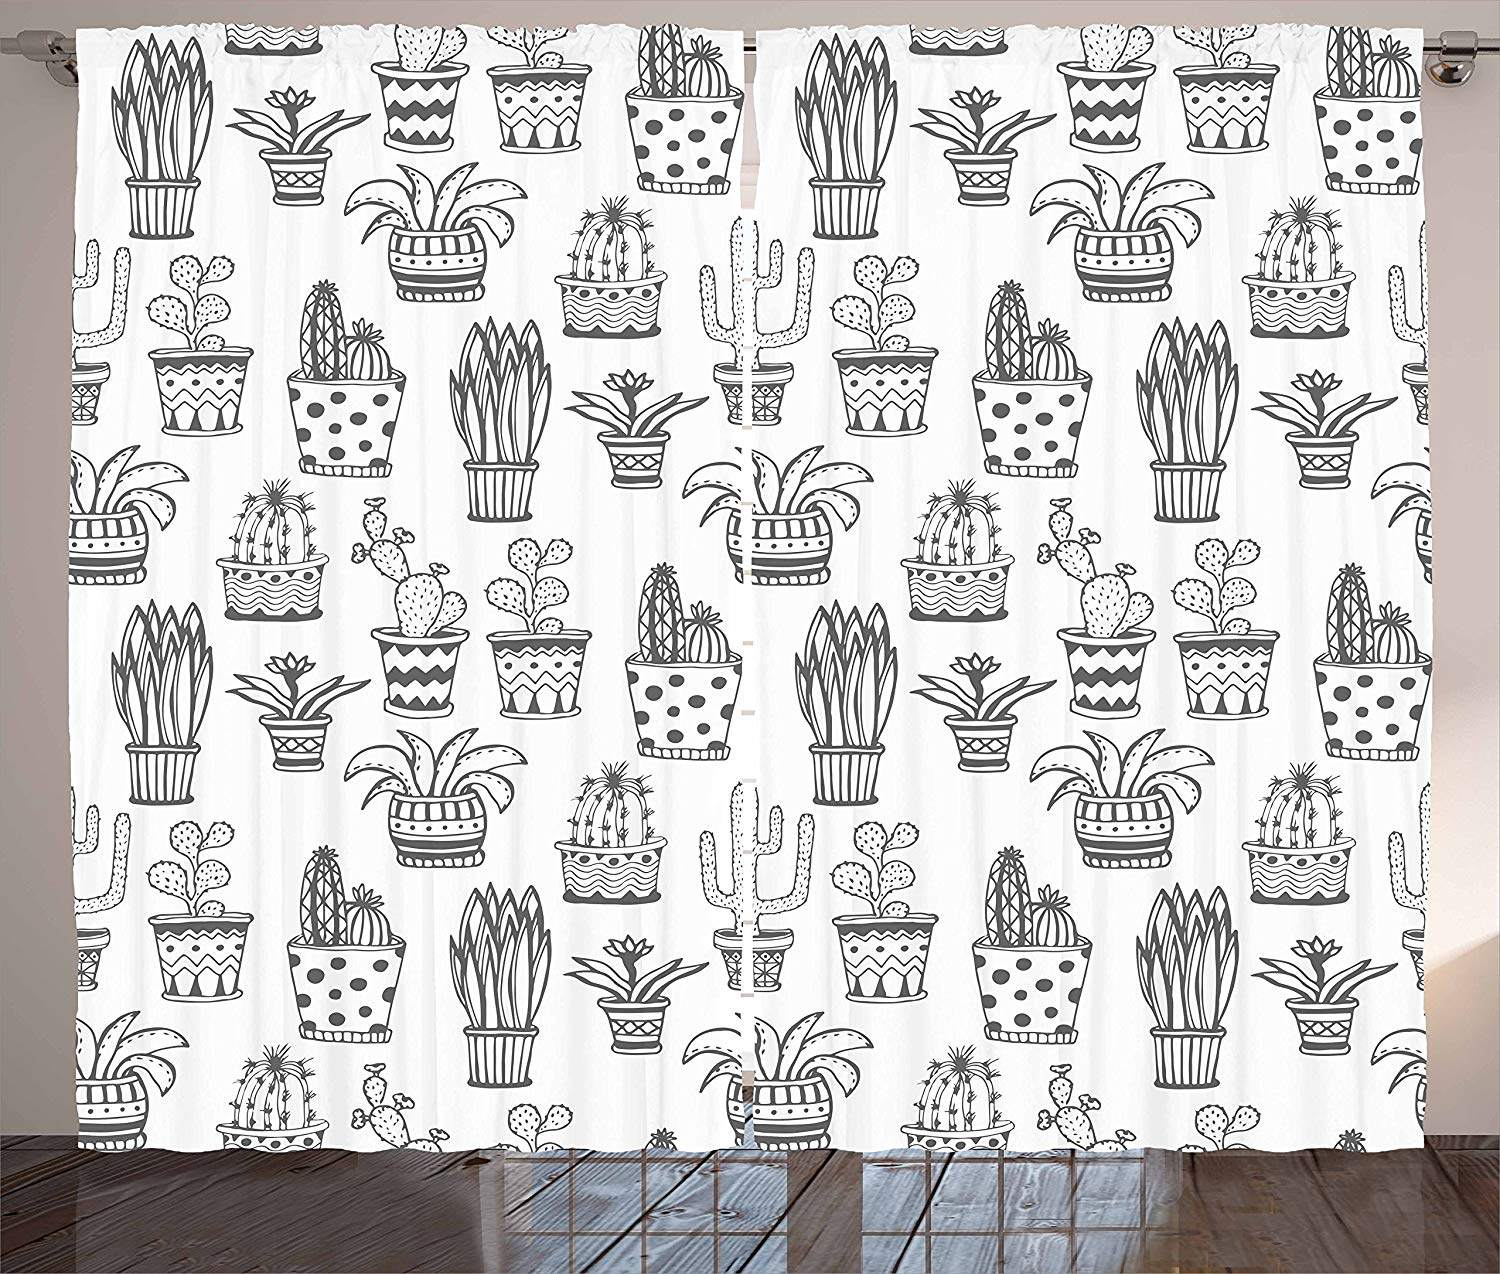 Cactus Kitchen Curtains Doodle Flowers In Pots With Polka Dots And